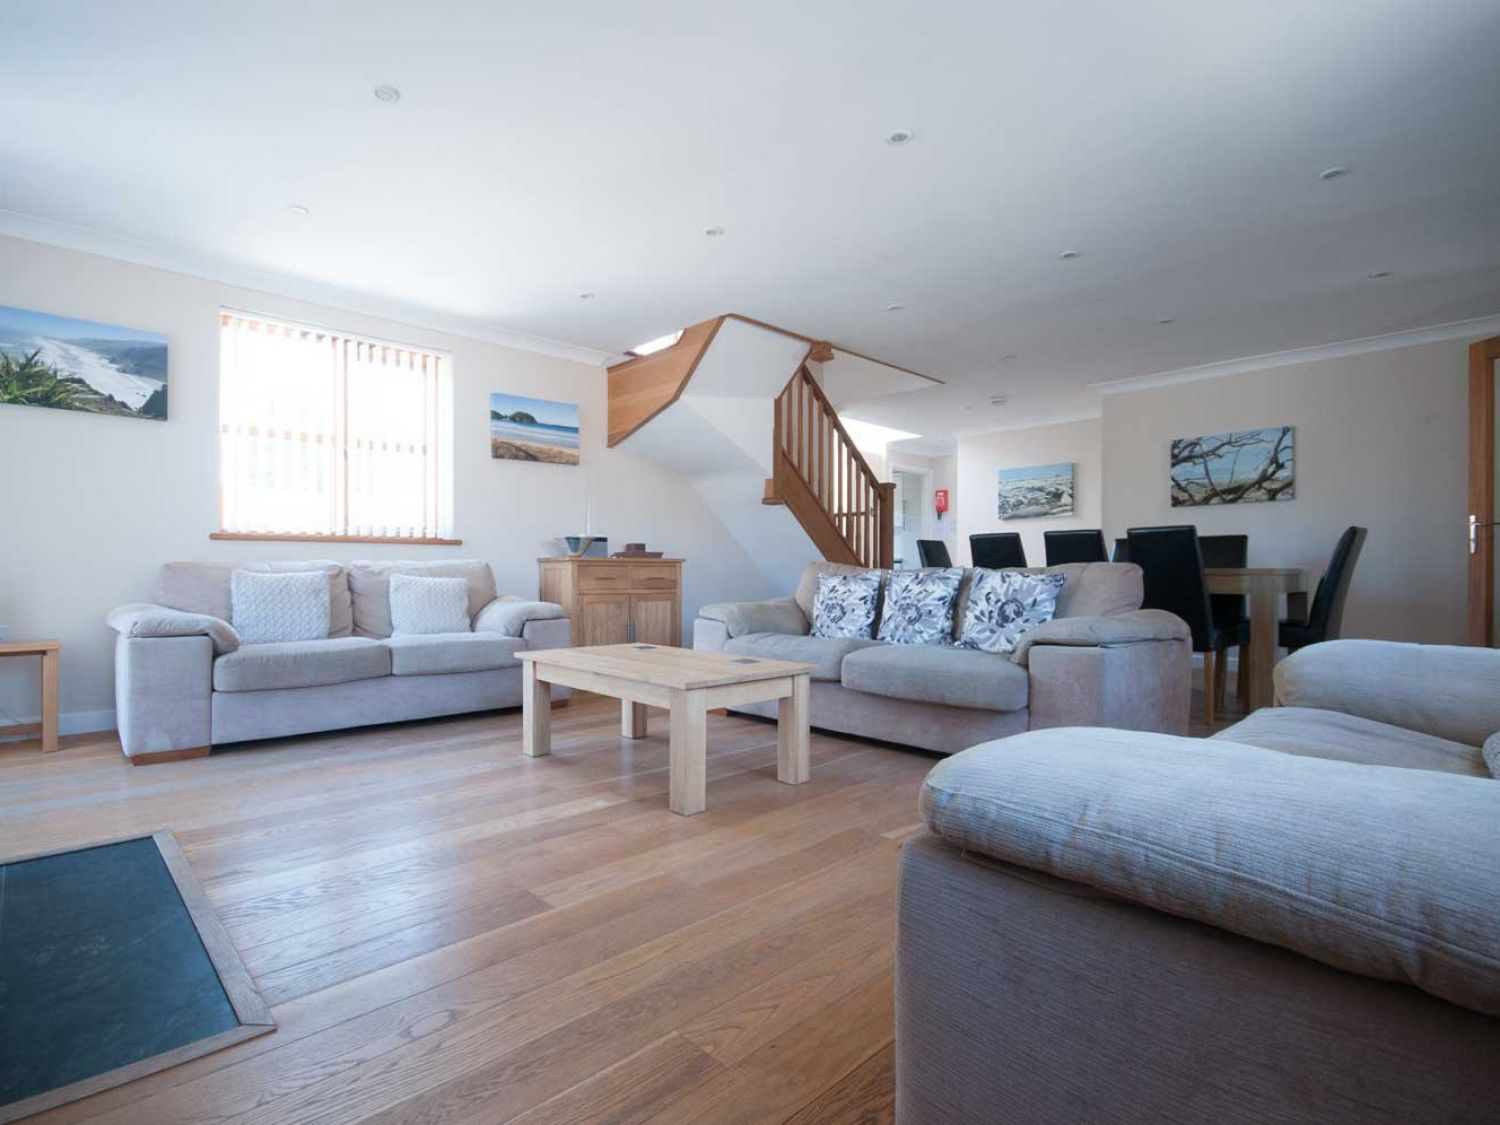 Carpe Diem in Crantock - sleeps 8 people